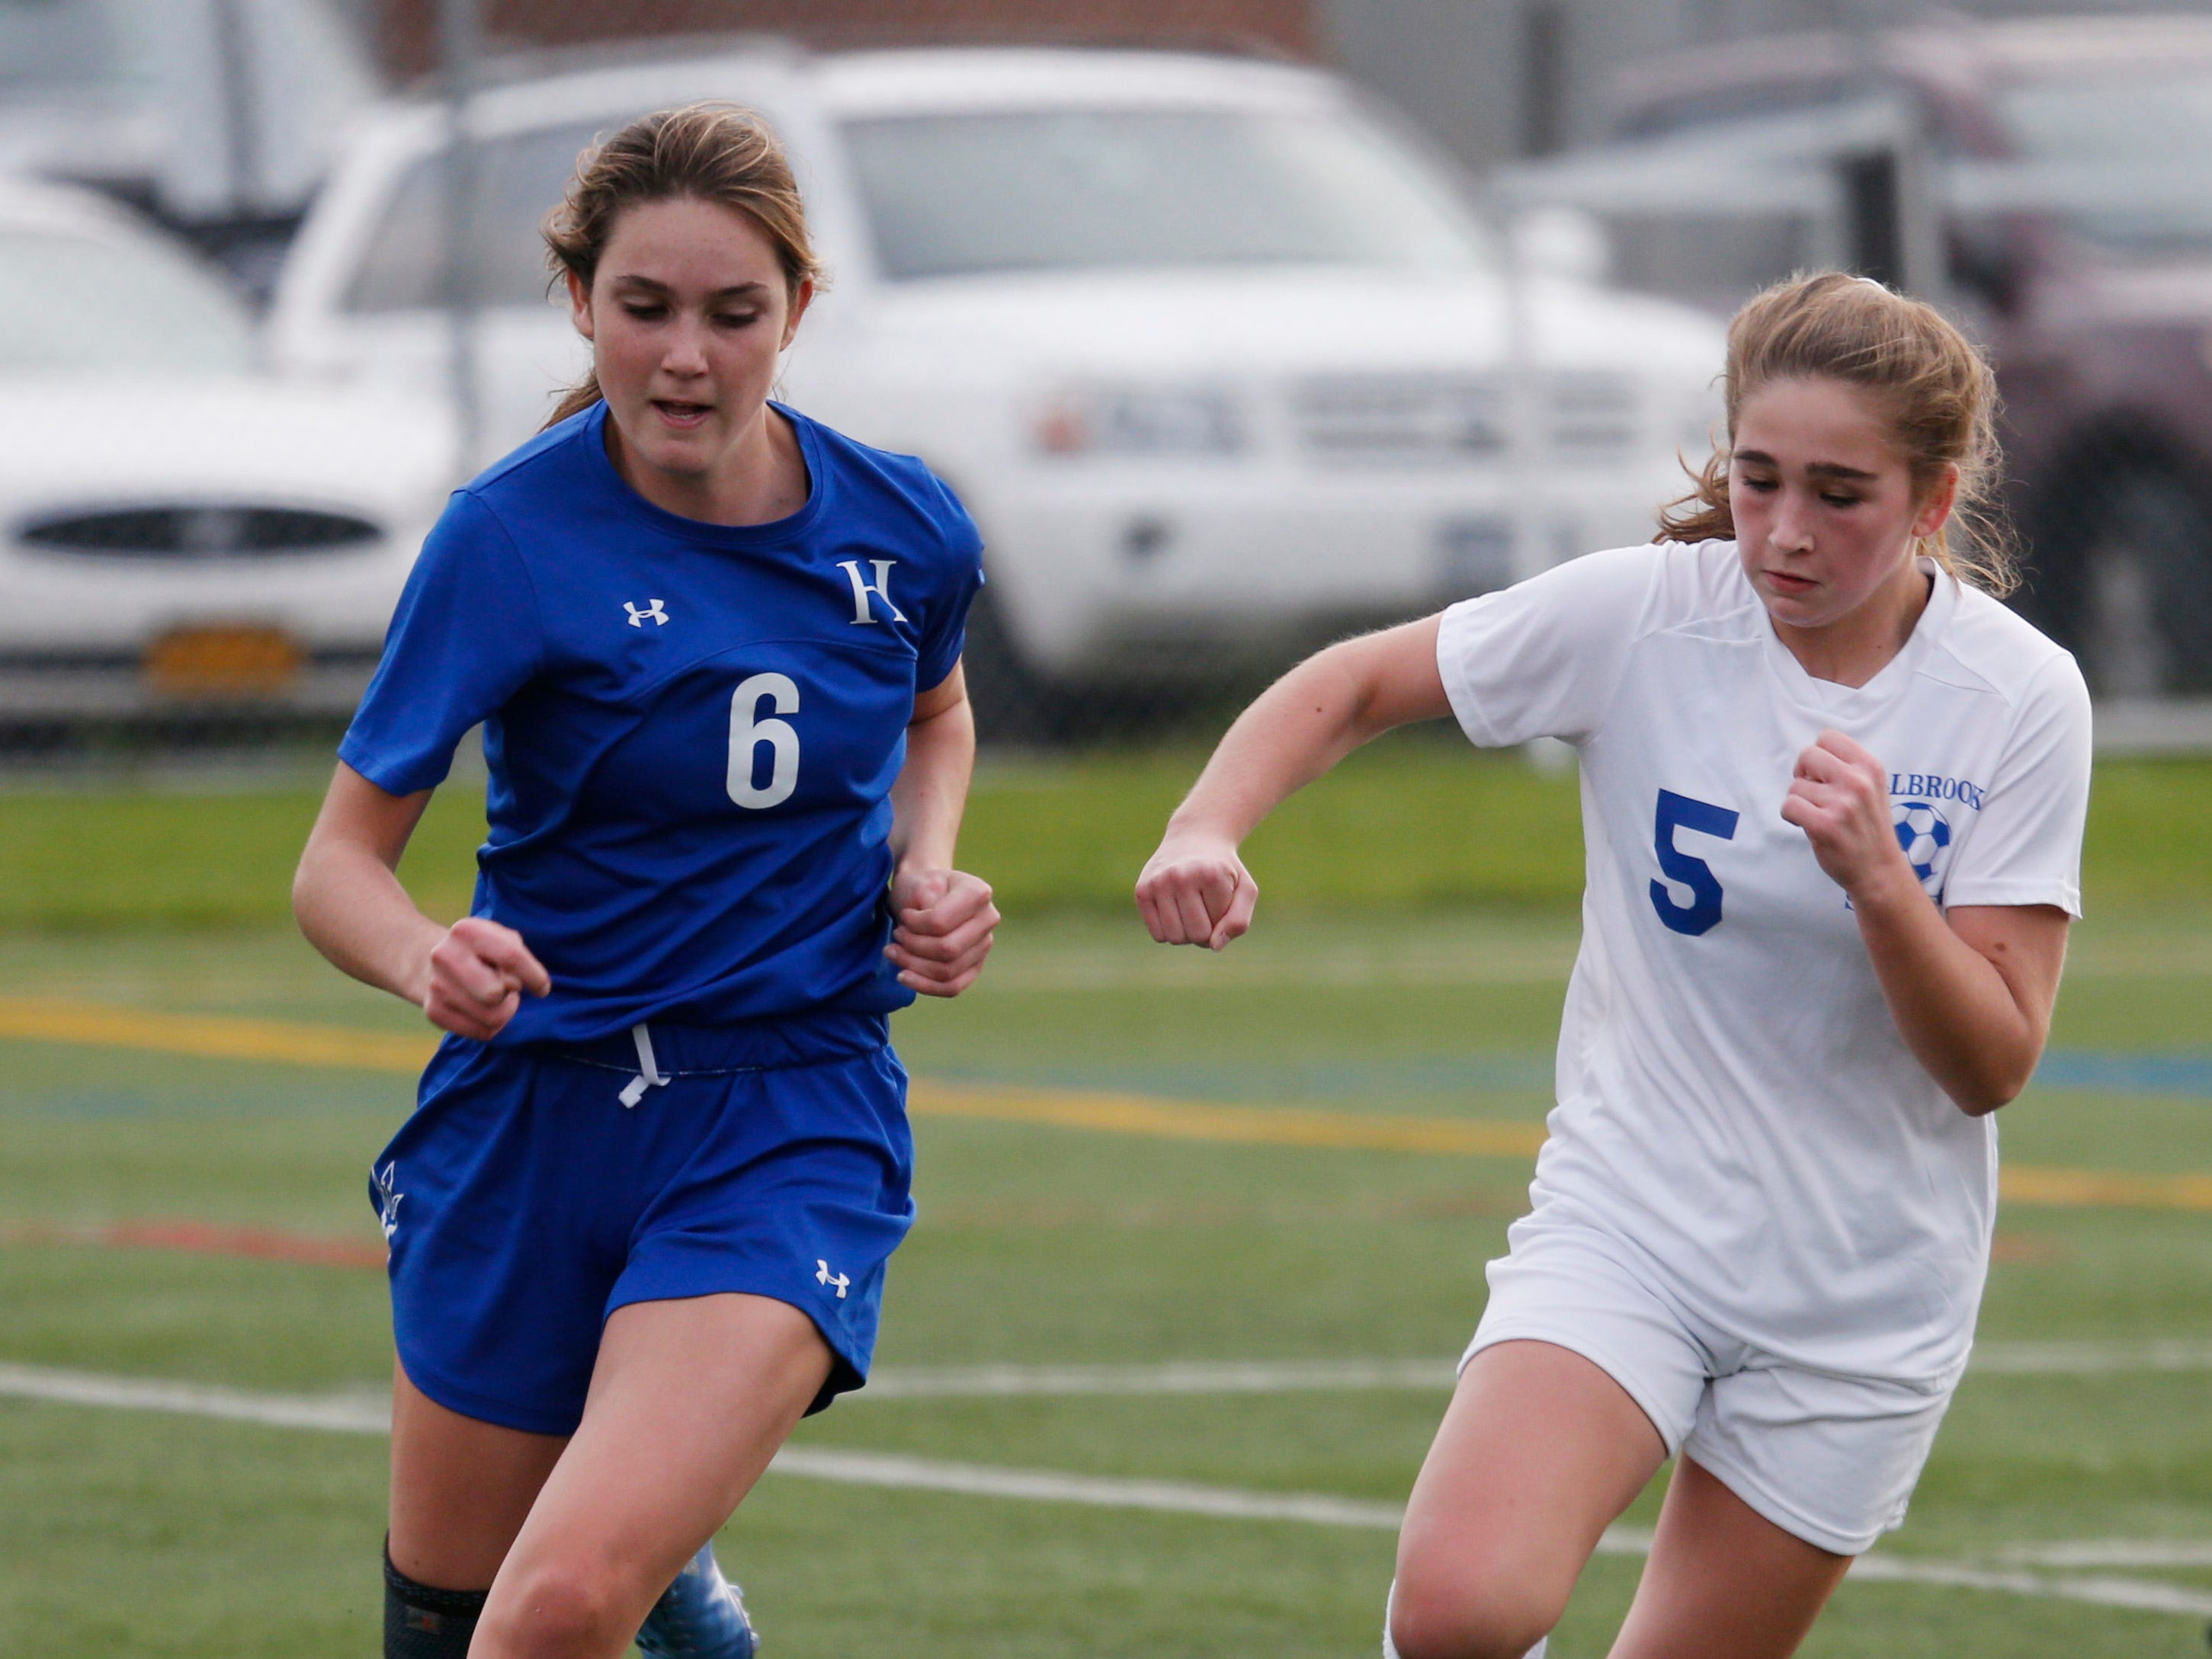 Haldane's Maura Kane-Seitz and Millbrook's Eleeana Francia race for the ball during Wednesday's Class C regional semifinal in Freedom Plains on October 31, 2018.